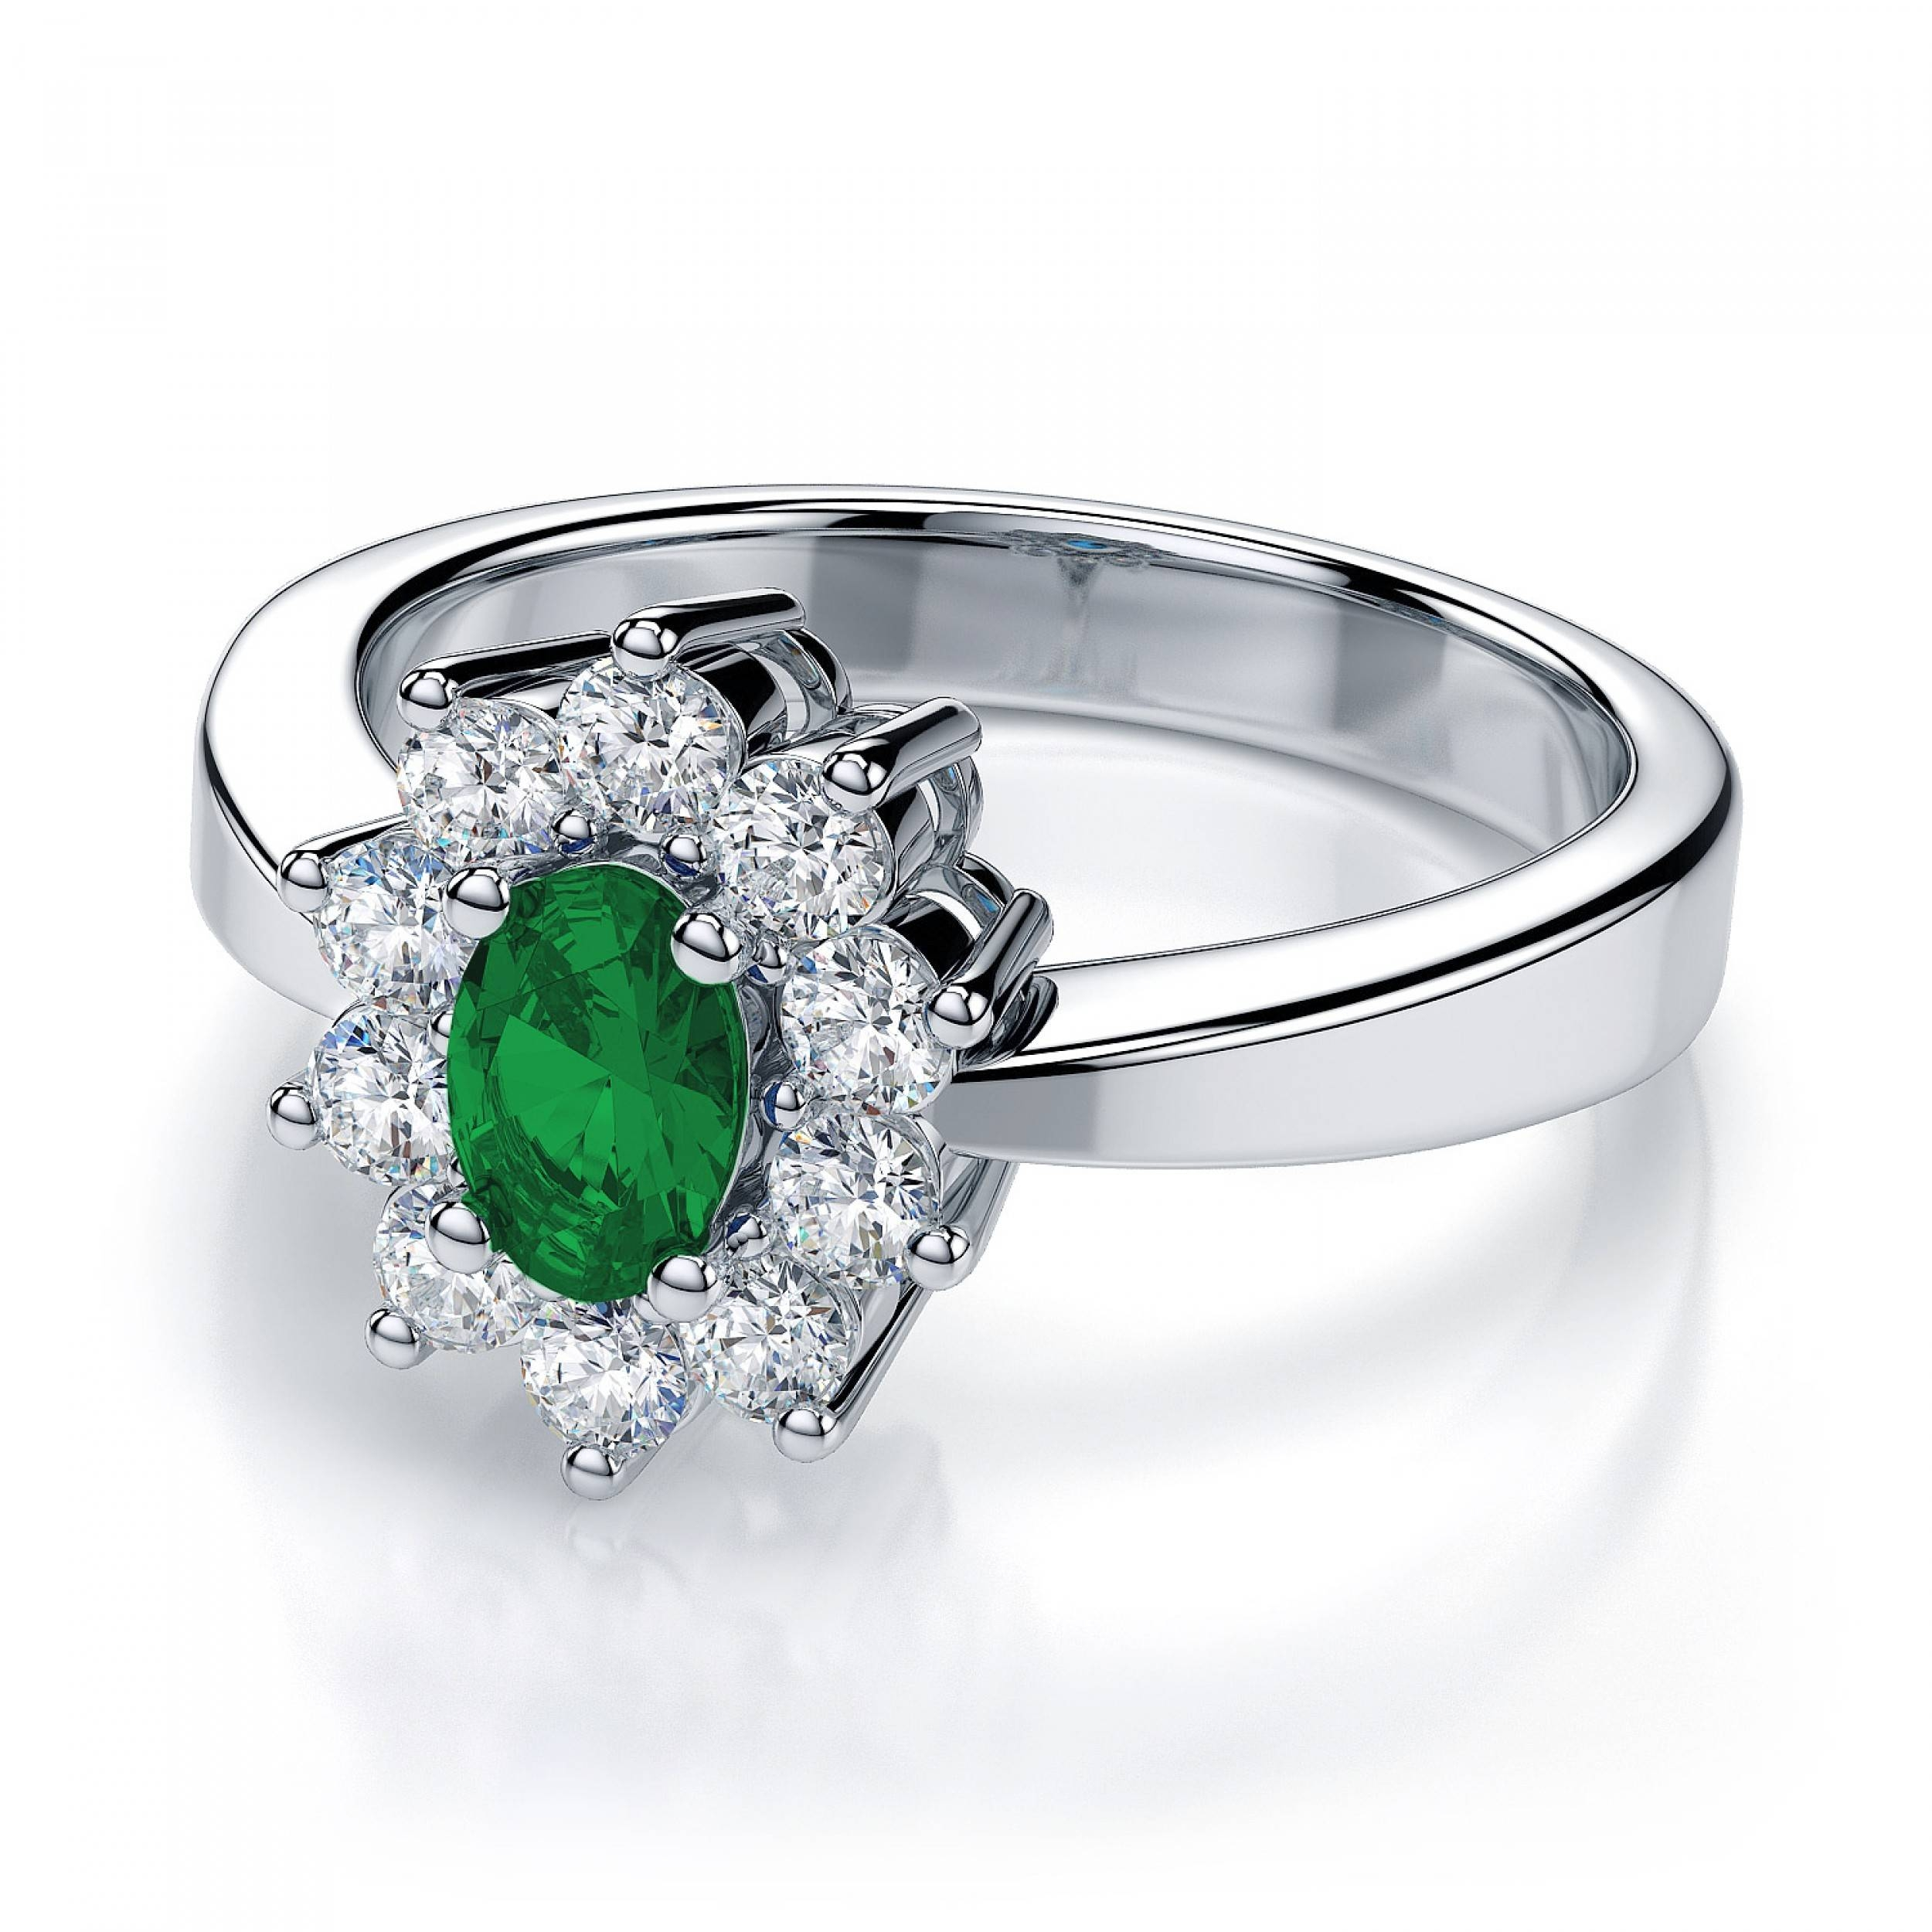 Lab Created Emerald Gemstone And Diamond Ring In 18K White Gold With Regard To Oval Emerald Engagement Rings (Gallery 13 of 15)